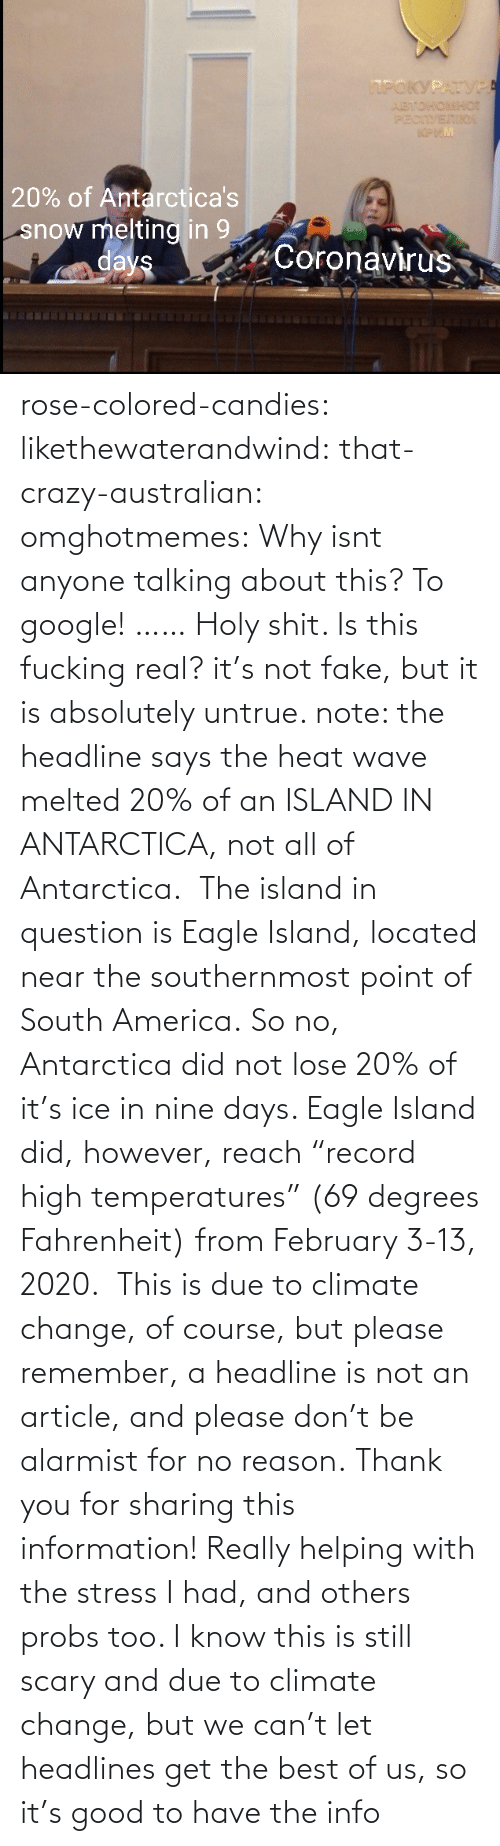 "Let: rose-colored-candies: likethewaterandwind:   that-crazy-australian:  omghotmemes:  Why isnt anyone talking about this?   To google!  ……   Holy shit. Is this fucking real?   it's not fake, but it is absolutely untrue. note: the headline says the heat wave melted 20% of an ISLAND IN ANTARCTICA, not all of Antarctica.  The island in question is Eagle Island, located near the southernmost point of South America. So no, Antarctica did not lose 20% of it's ice in nine days. Eagle Island did, however, reach ""record high temperatures"" (69 degrees Fahrenheit) from February 3-13, 2020.  This is due to climate change, of course, but please remember, a headline is not an article, and please don't be alarmist for no reason.    Thank you for sharing this information! Really helping with the stress I had, and others probs too. I know this is still scary and due to climate change, but we can't let headlines get the best of us, so it's good to have the info"